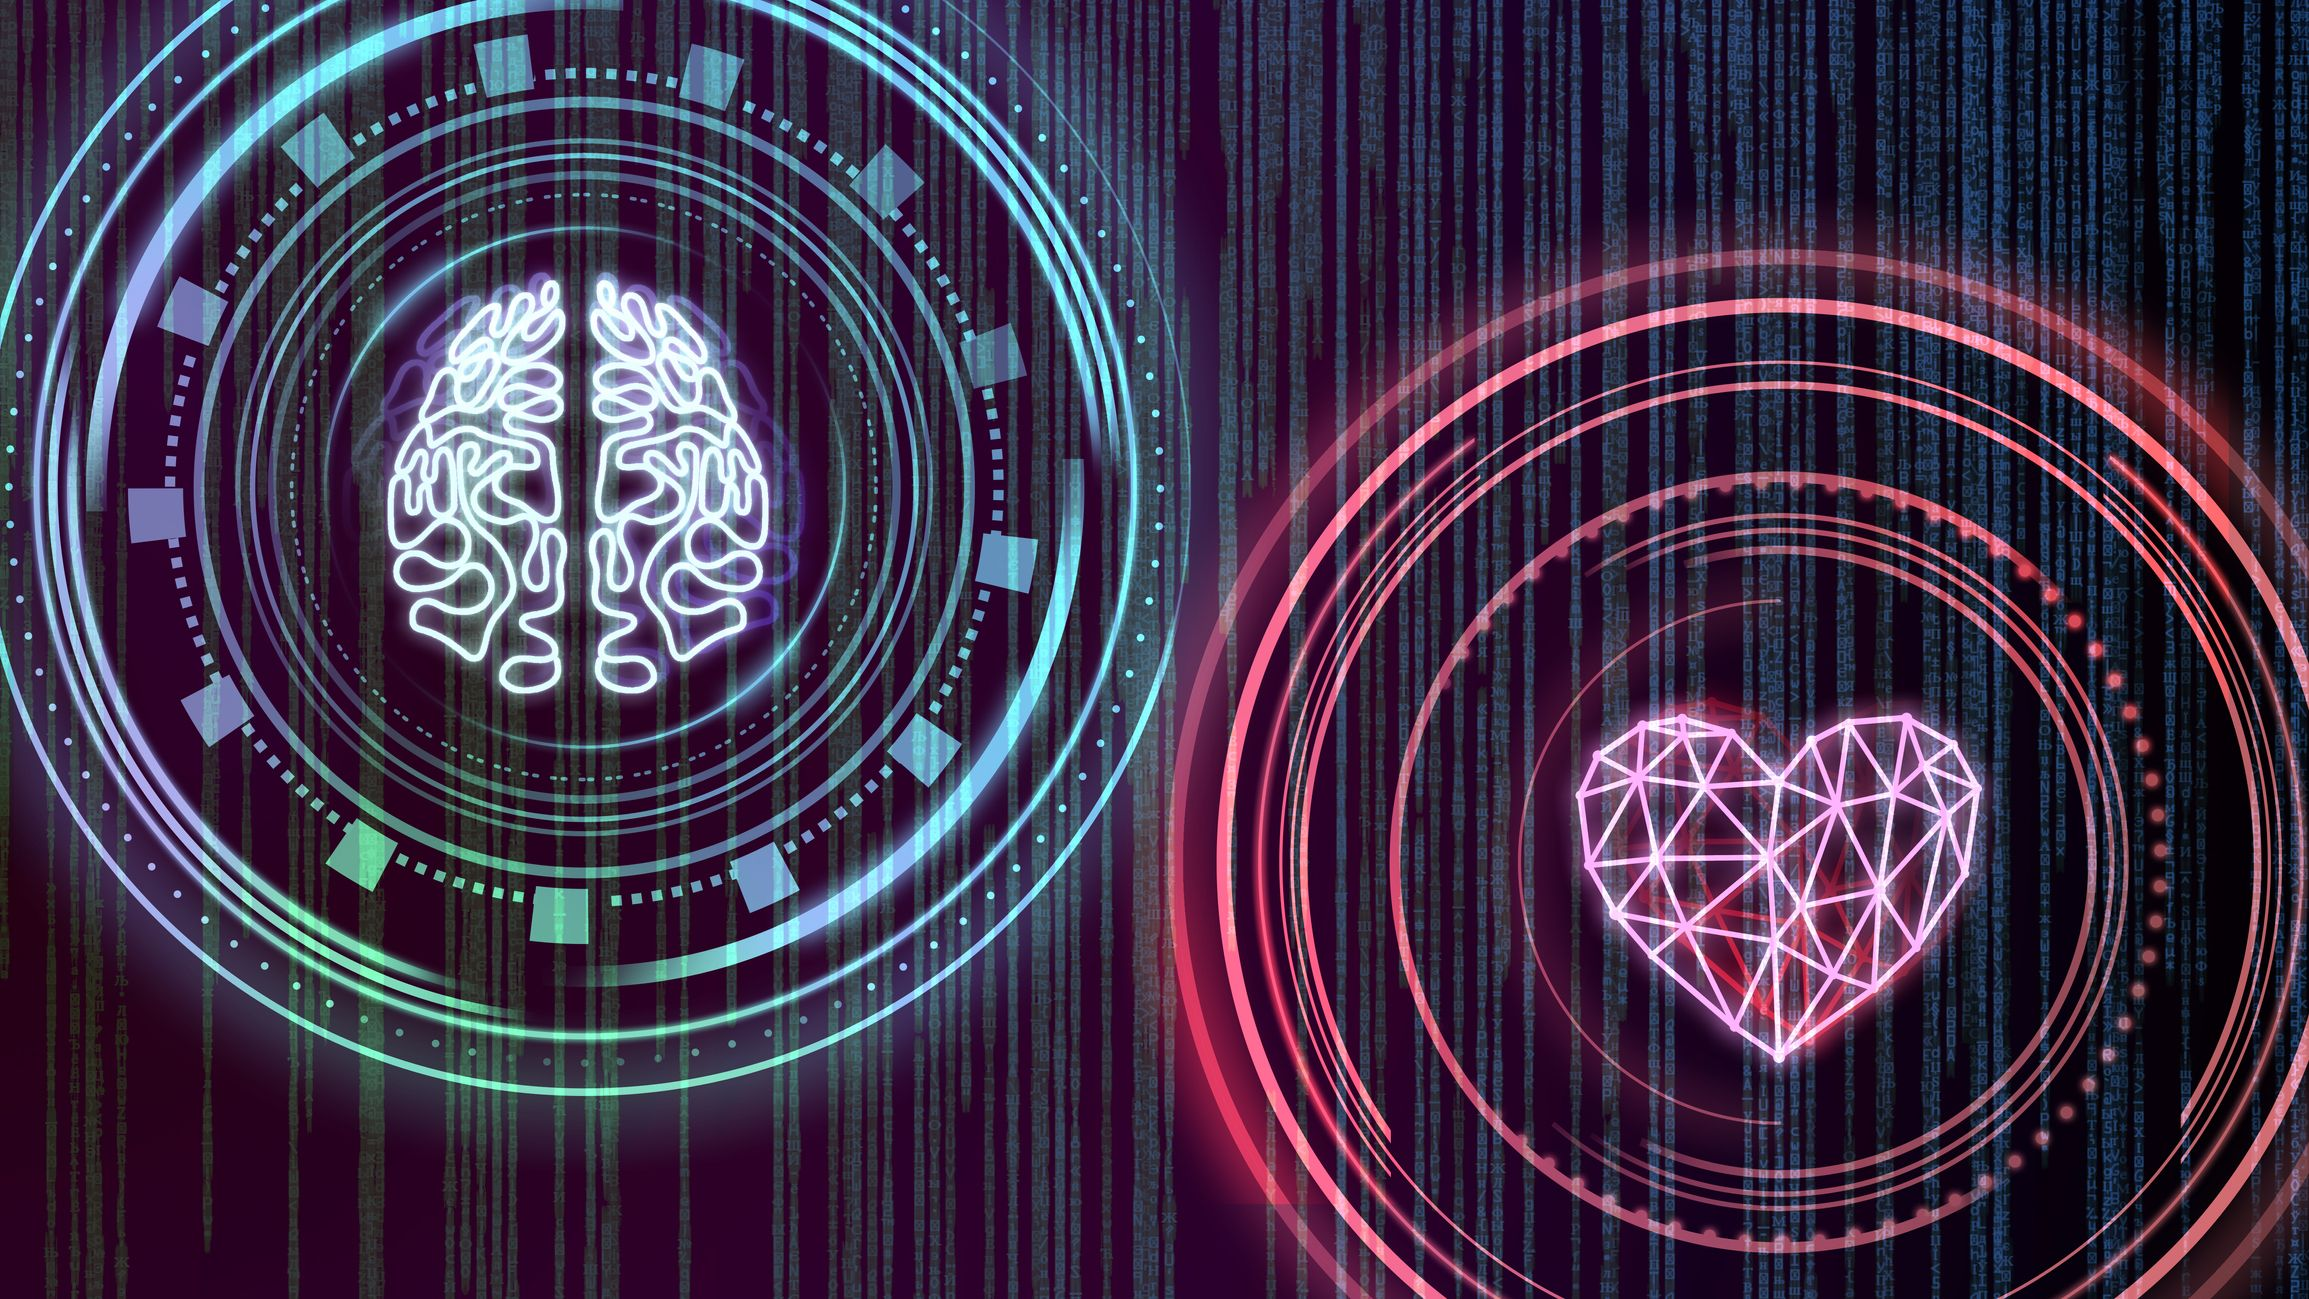 Creating new algorithms in the brain for more heart